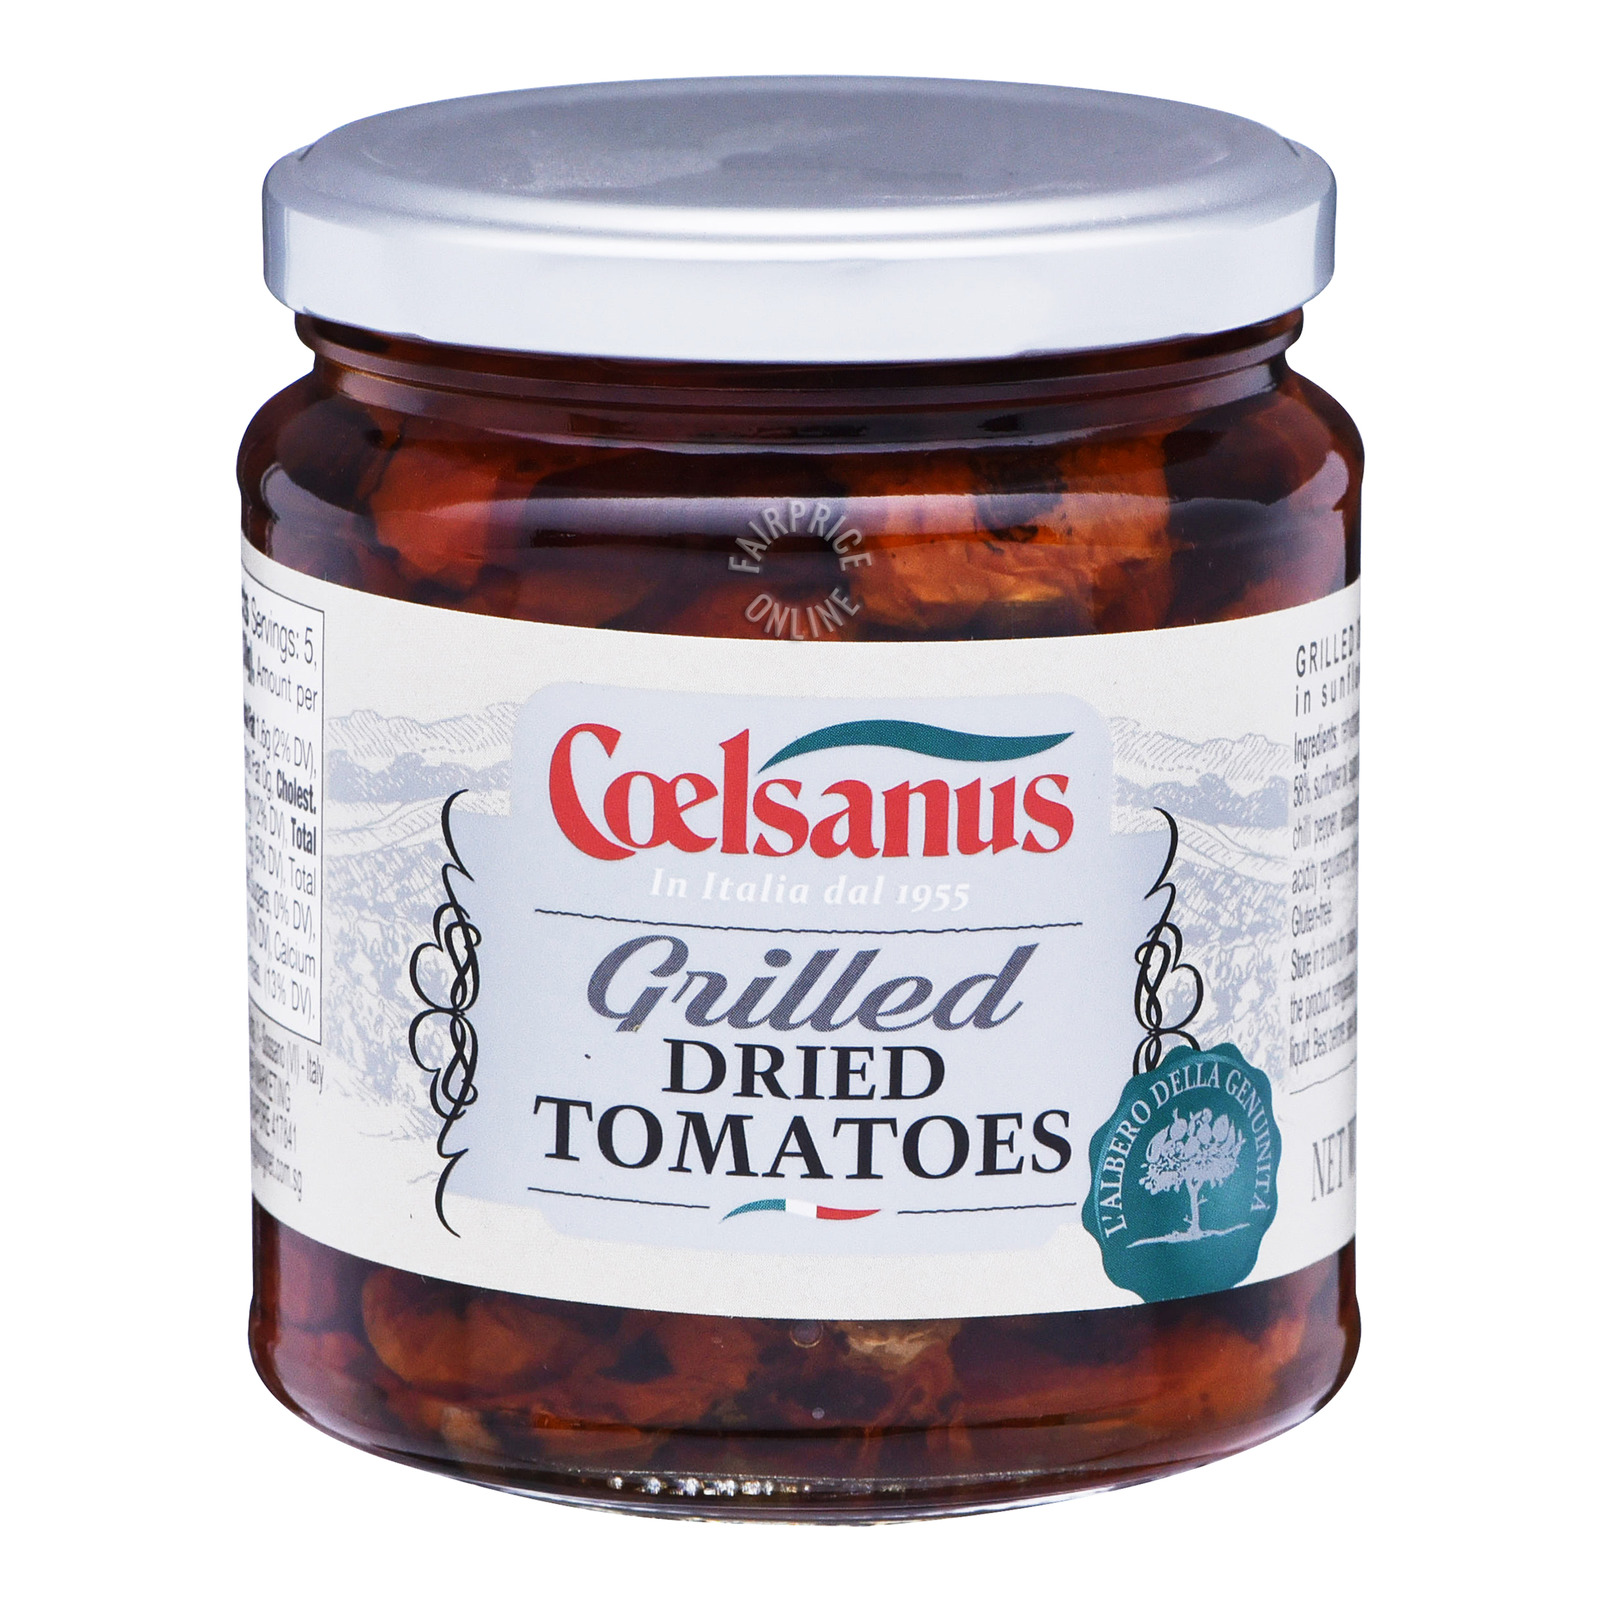 Coelsanus Dried Tomatoes in Sunflower Oil - Grilled